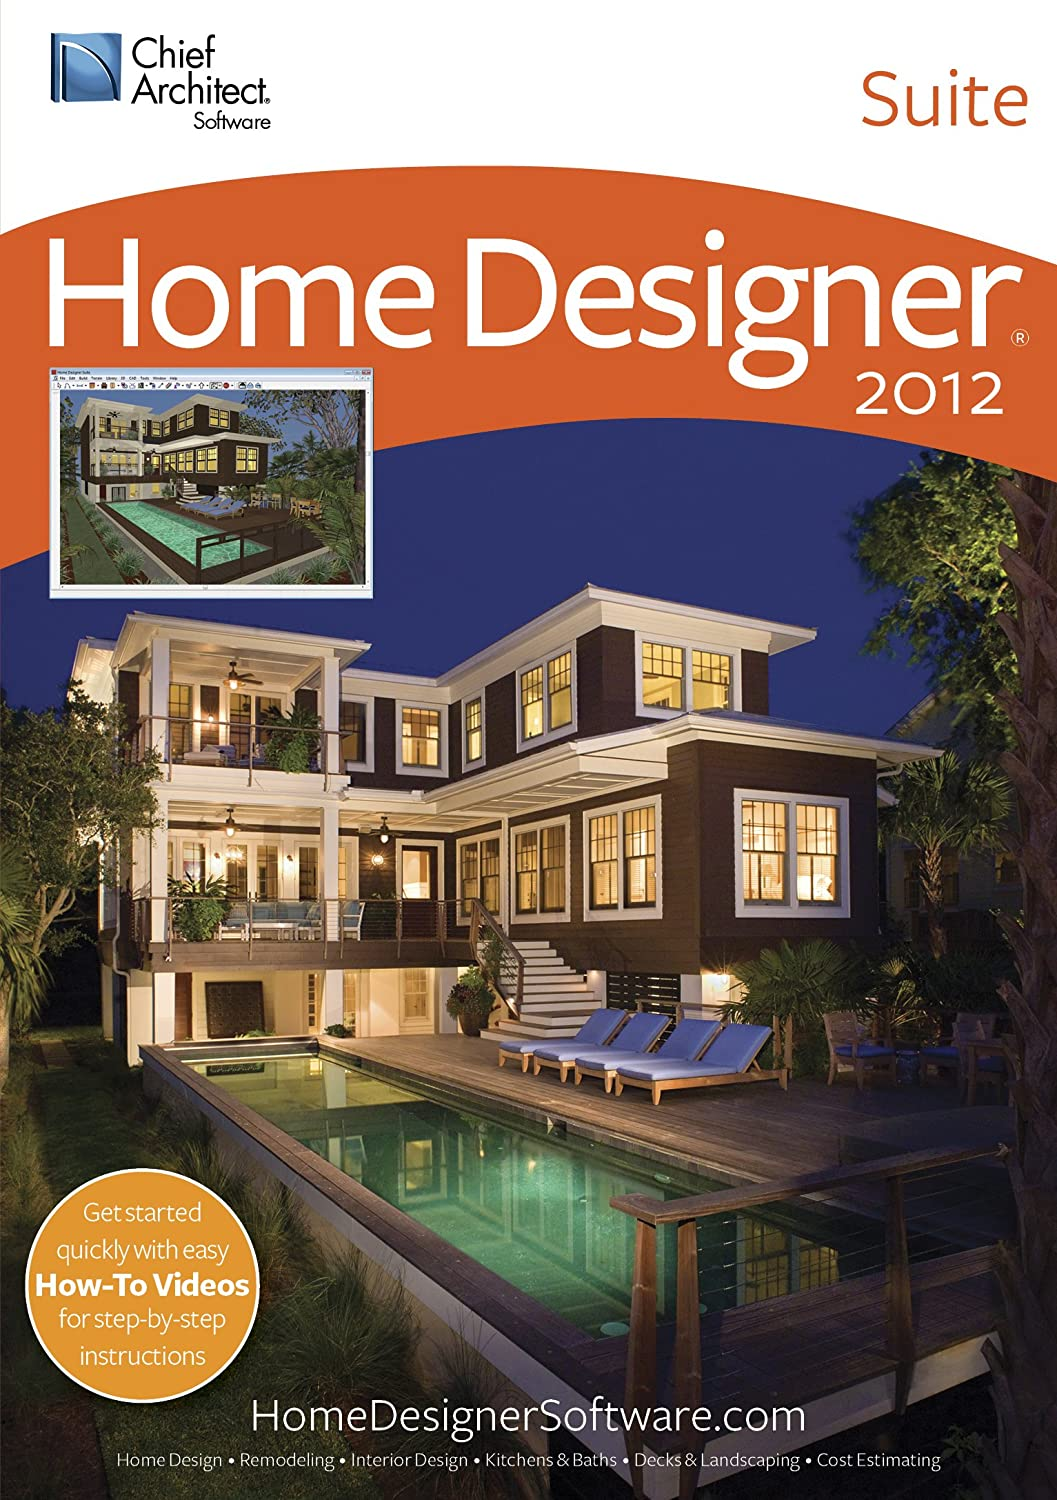 Amazon.com: Home Designer Suite 2012 [Download]: on designer shirts, designer cabins, designer flats, designer chairs, designer recliners, designer gloves, designer men suits,